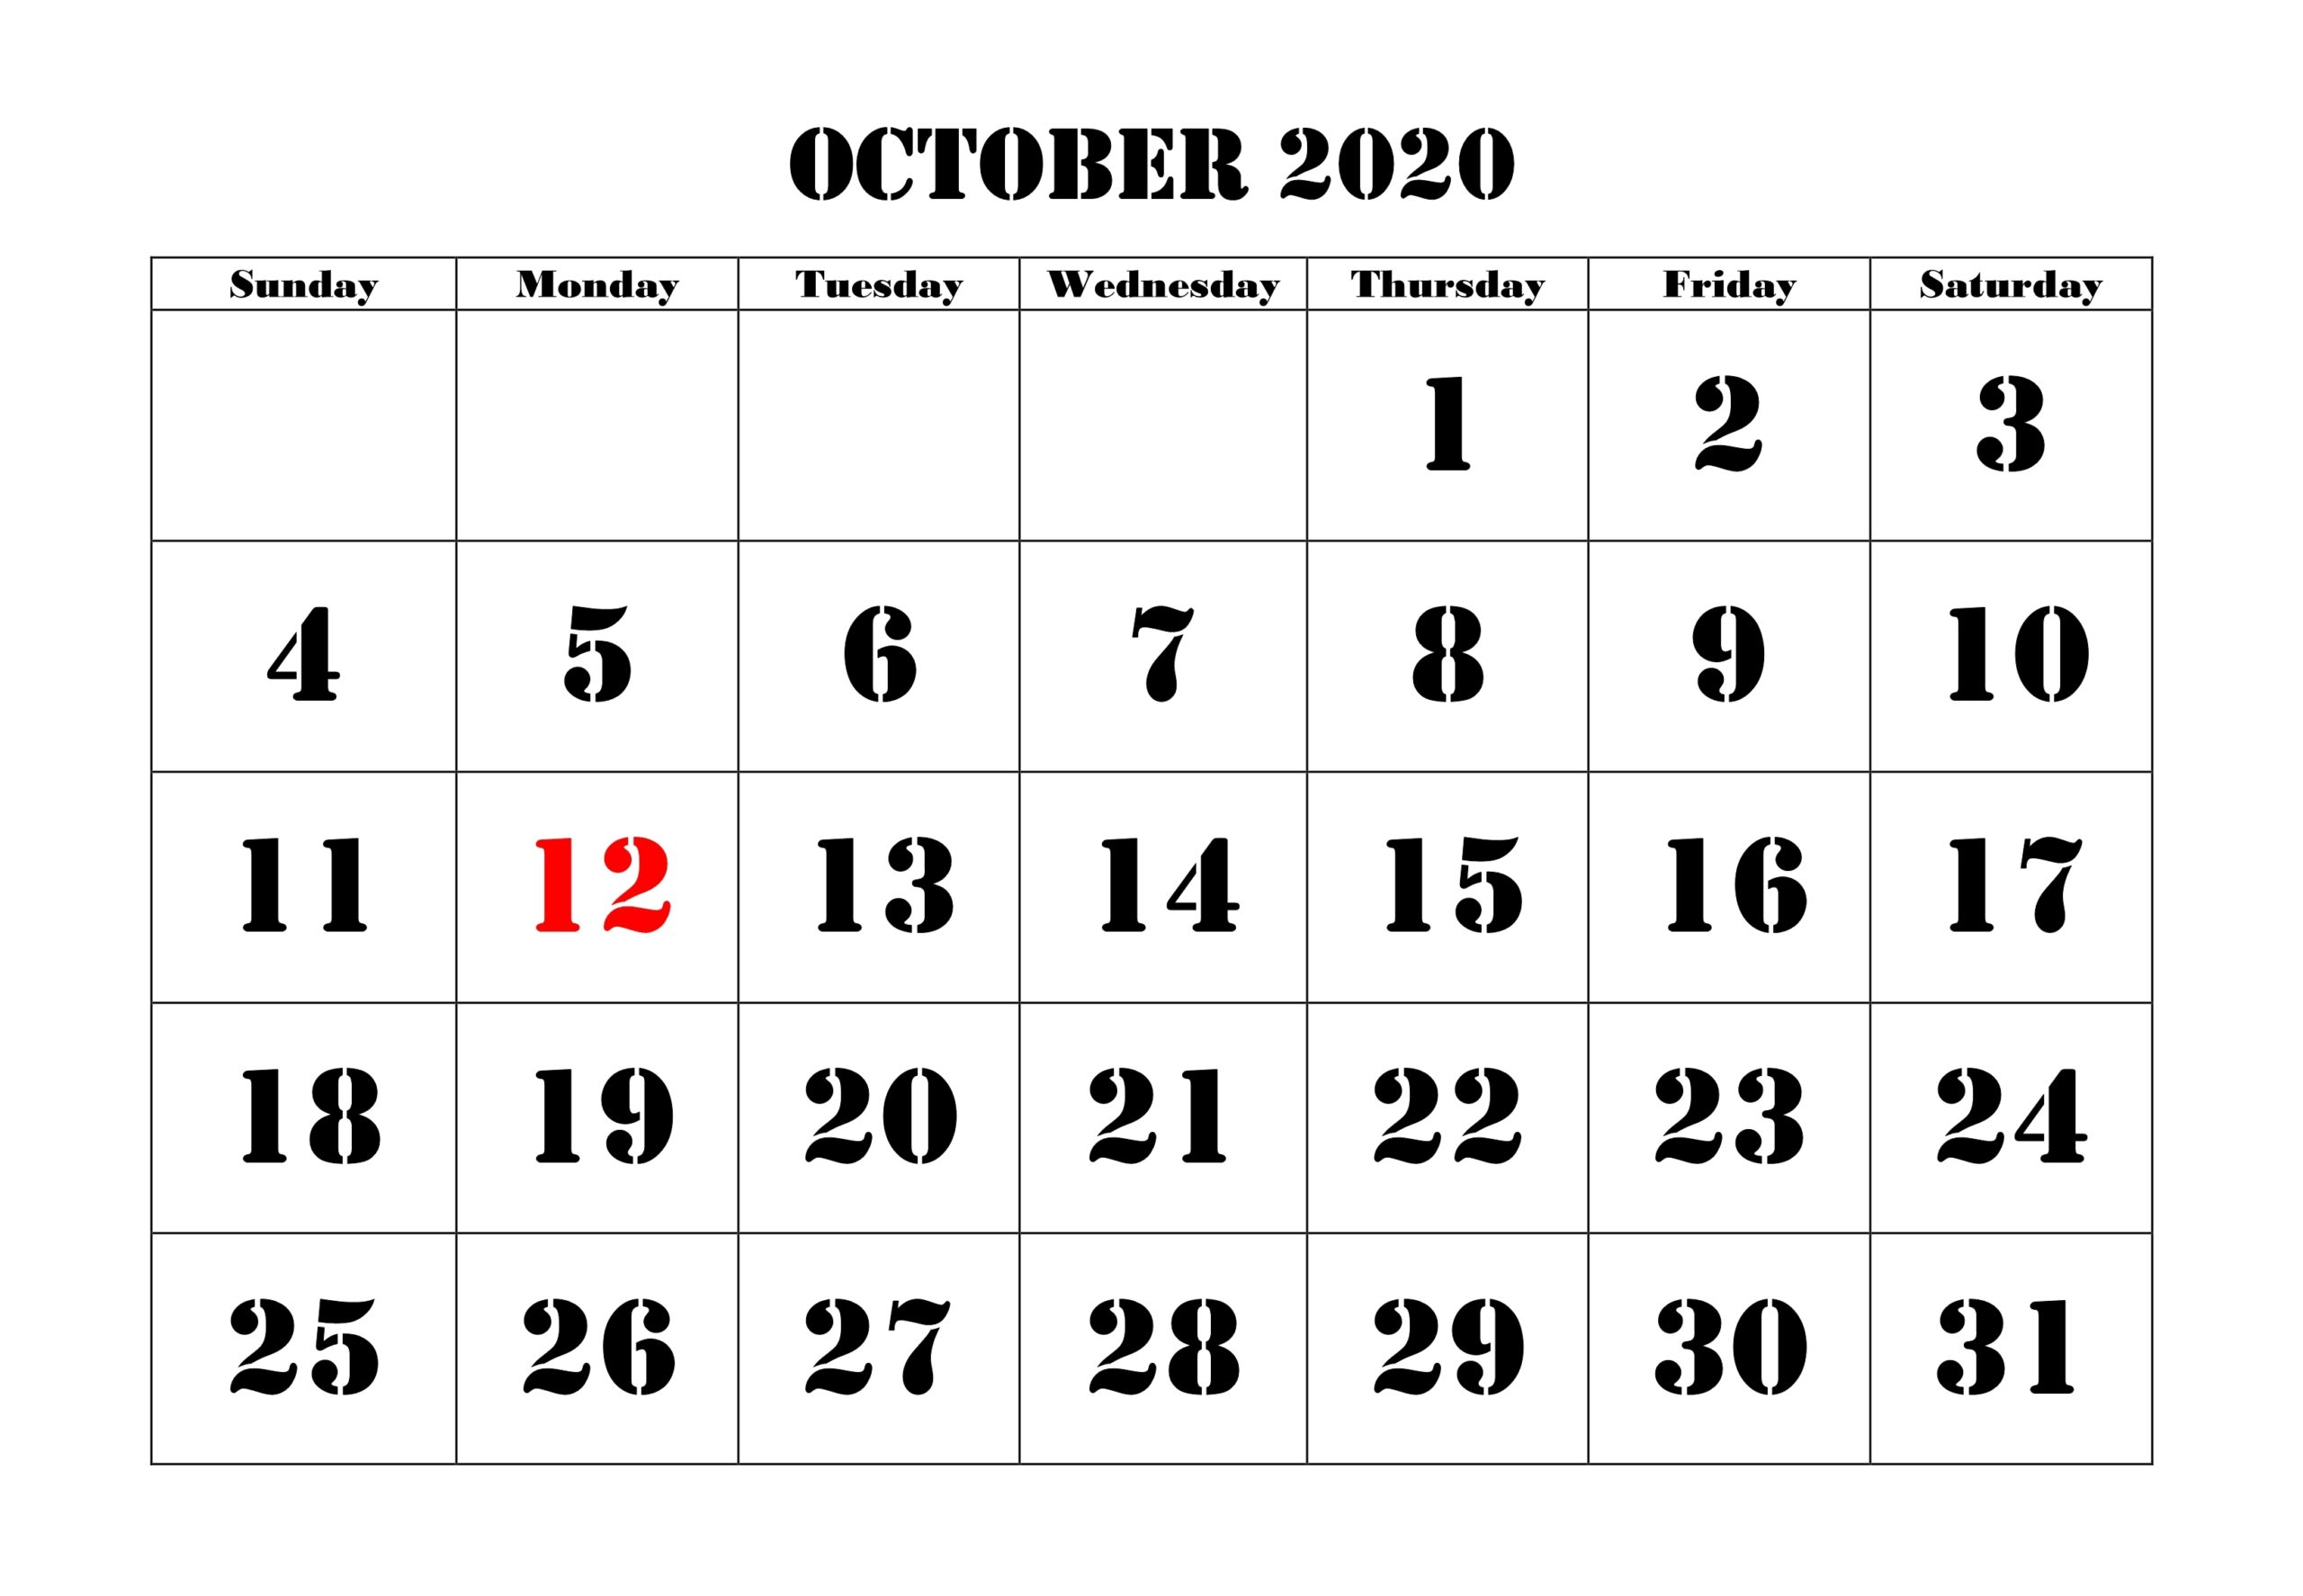 October 2020 Calendar Holidays UK